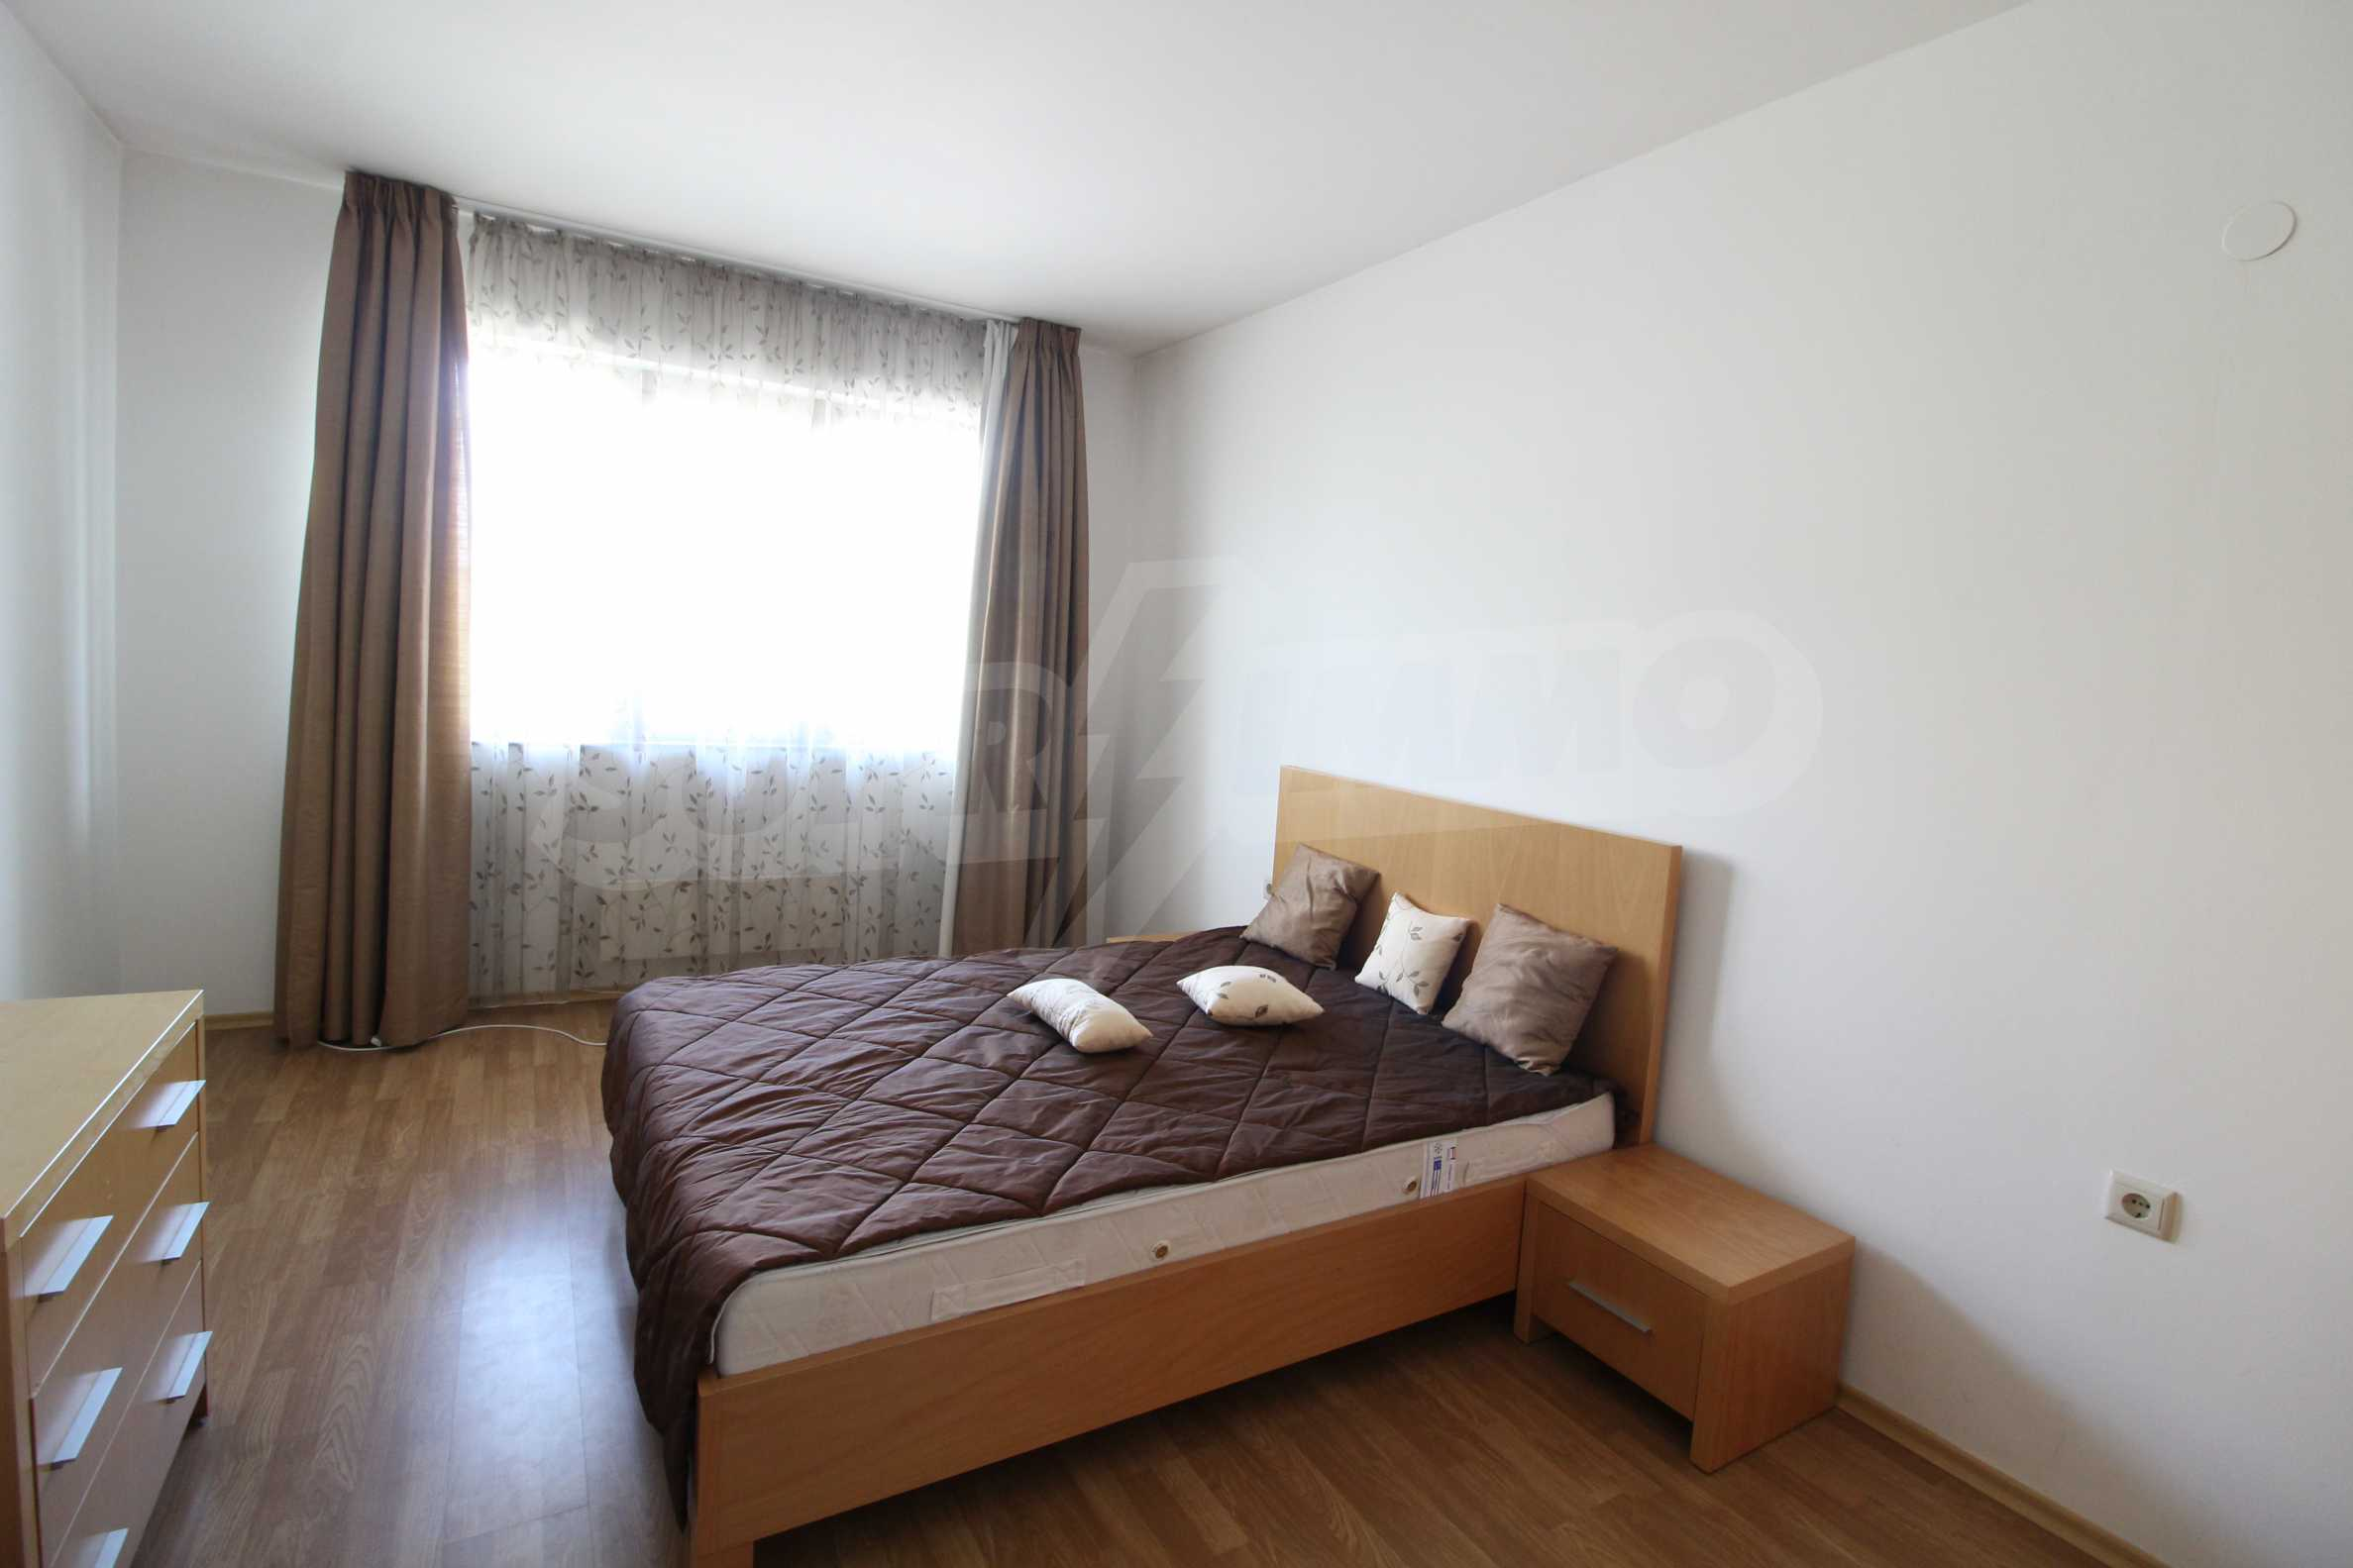 Furnished two-bedroom apartment located in Top Lodge complex, just meters from the ski lift in Bansko 7